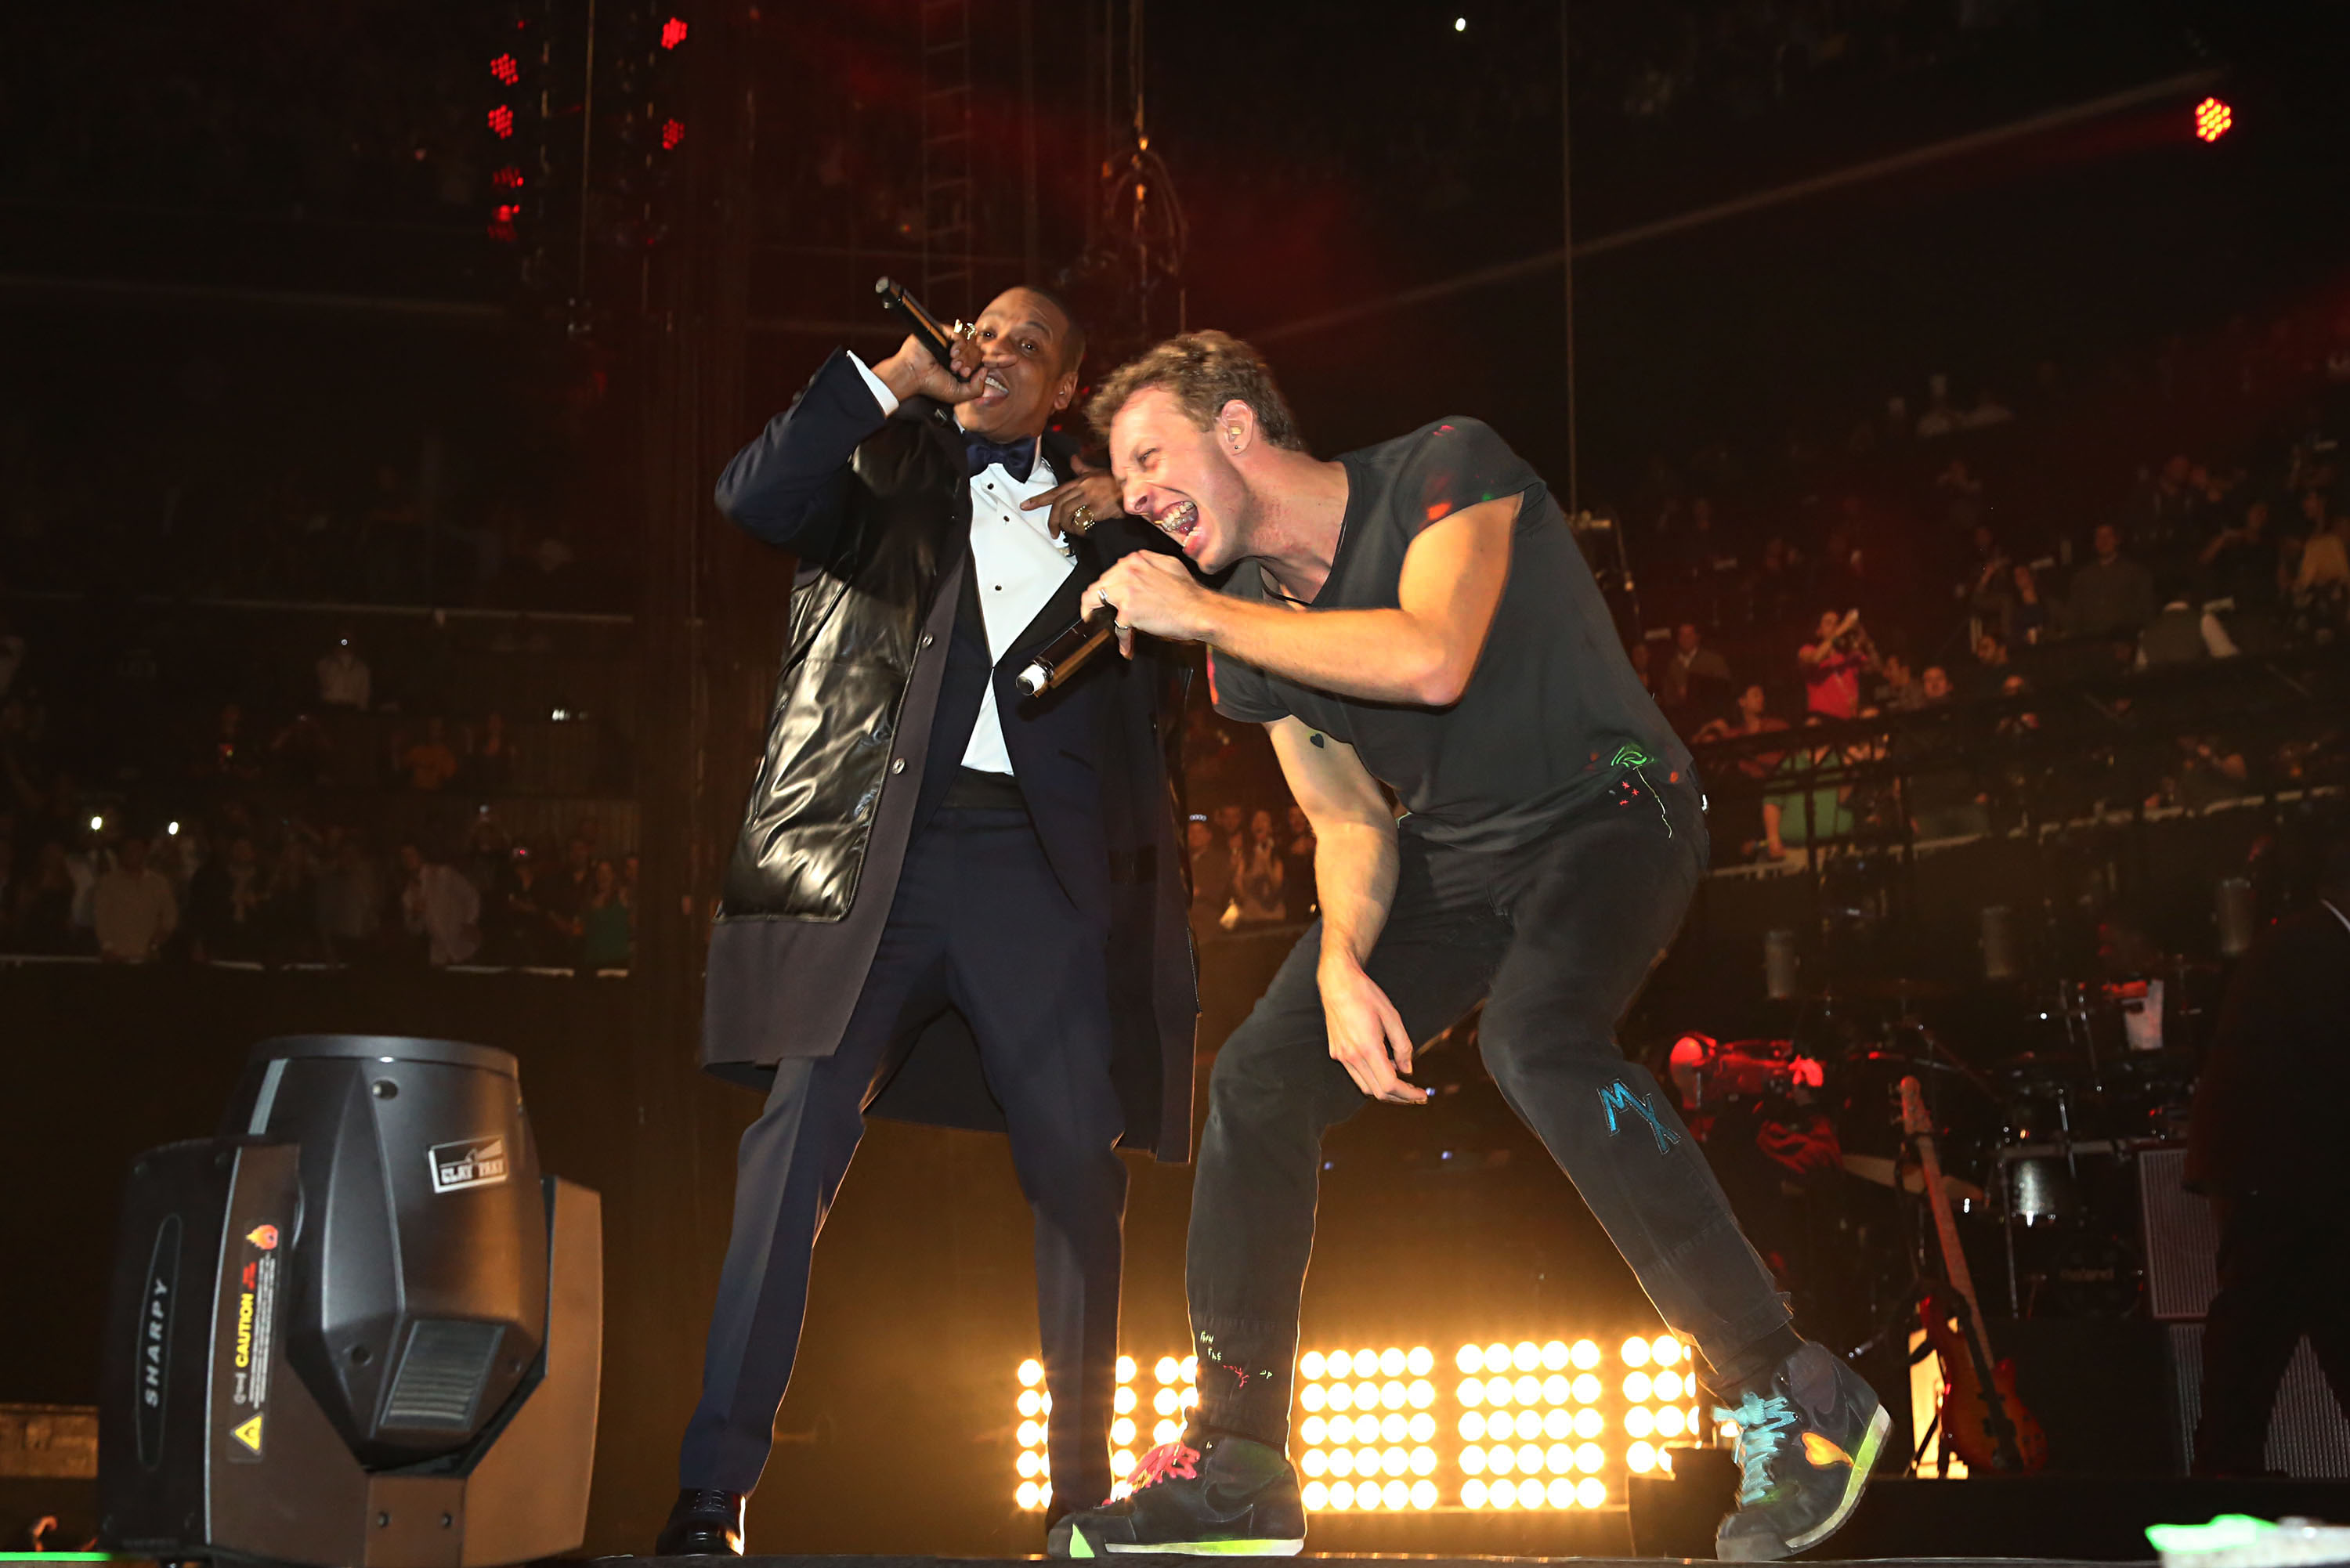 Jay-Z was joined by Chris Martin at midnight to count down the New Year.